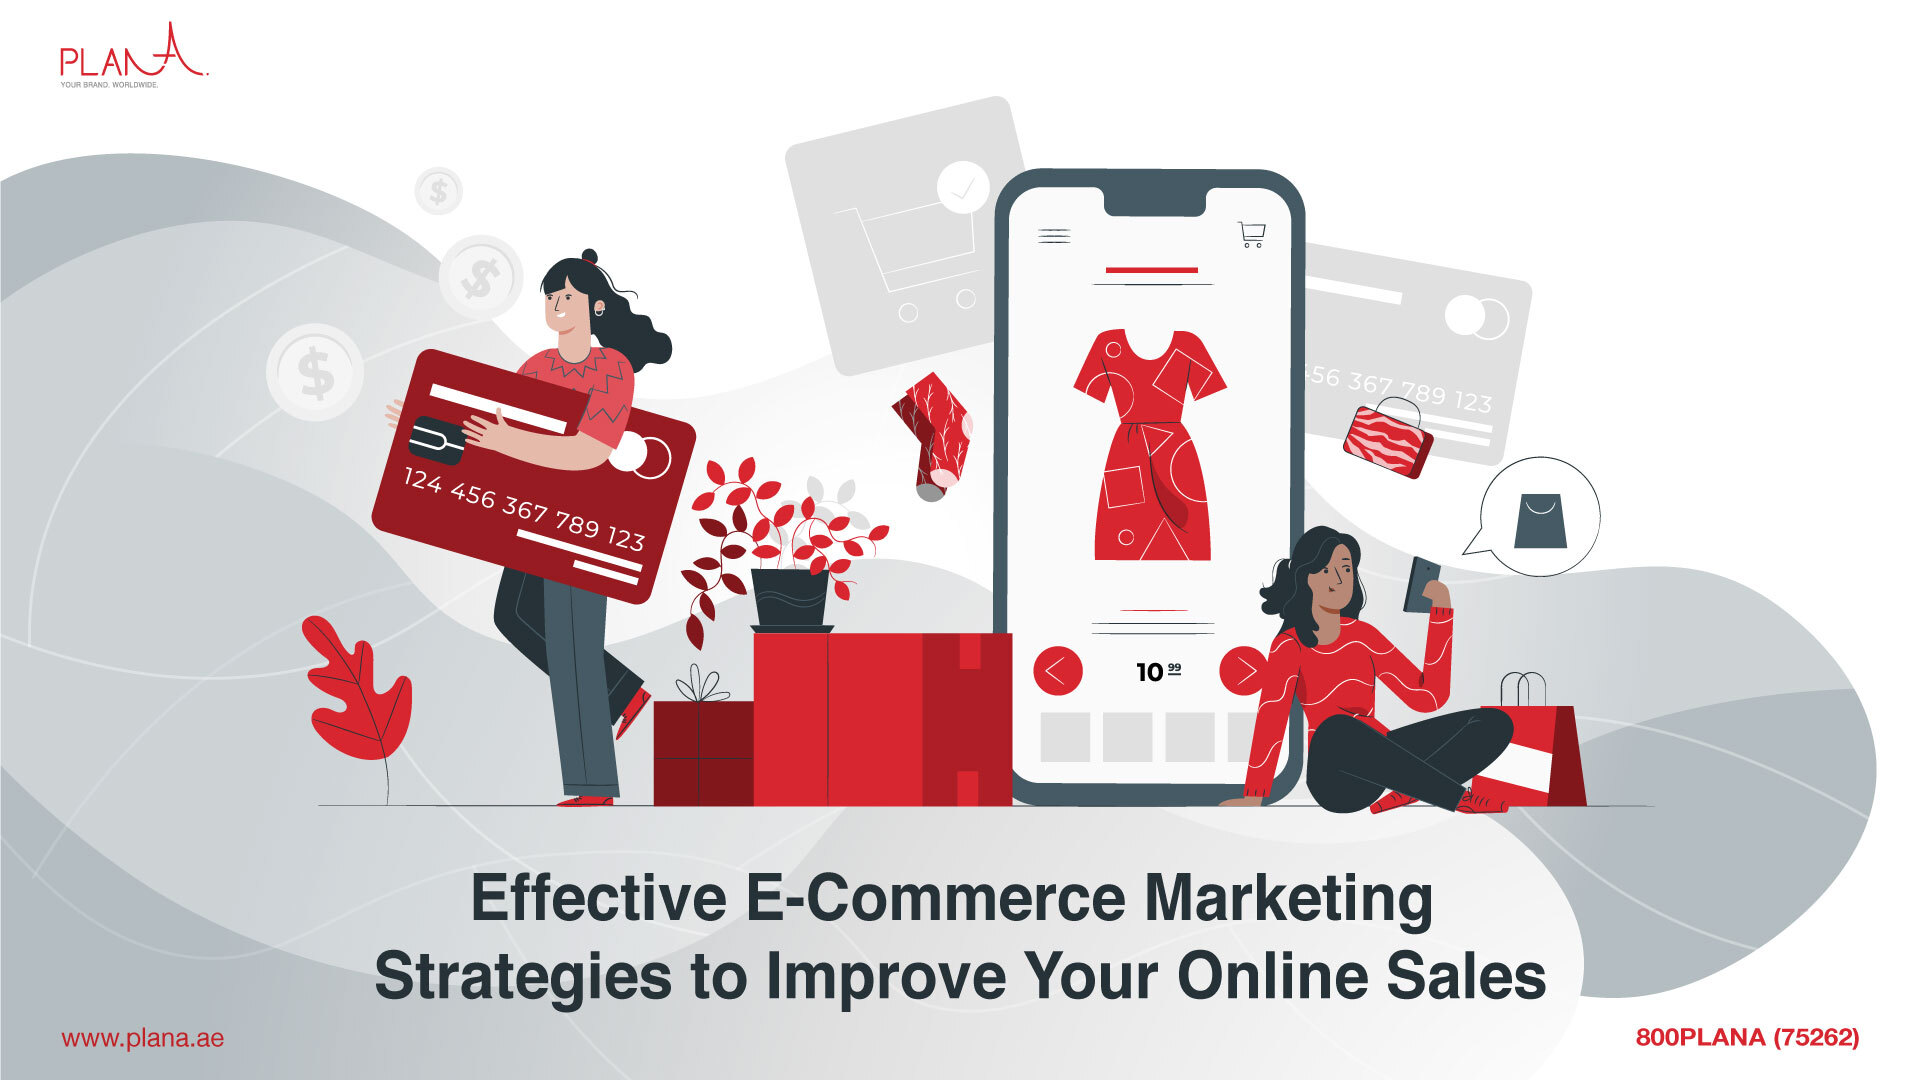 Effective Ecommerce Marketing Strategies to Improve Your Online Sales